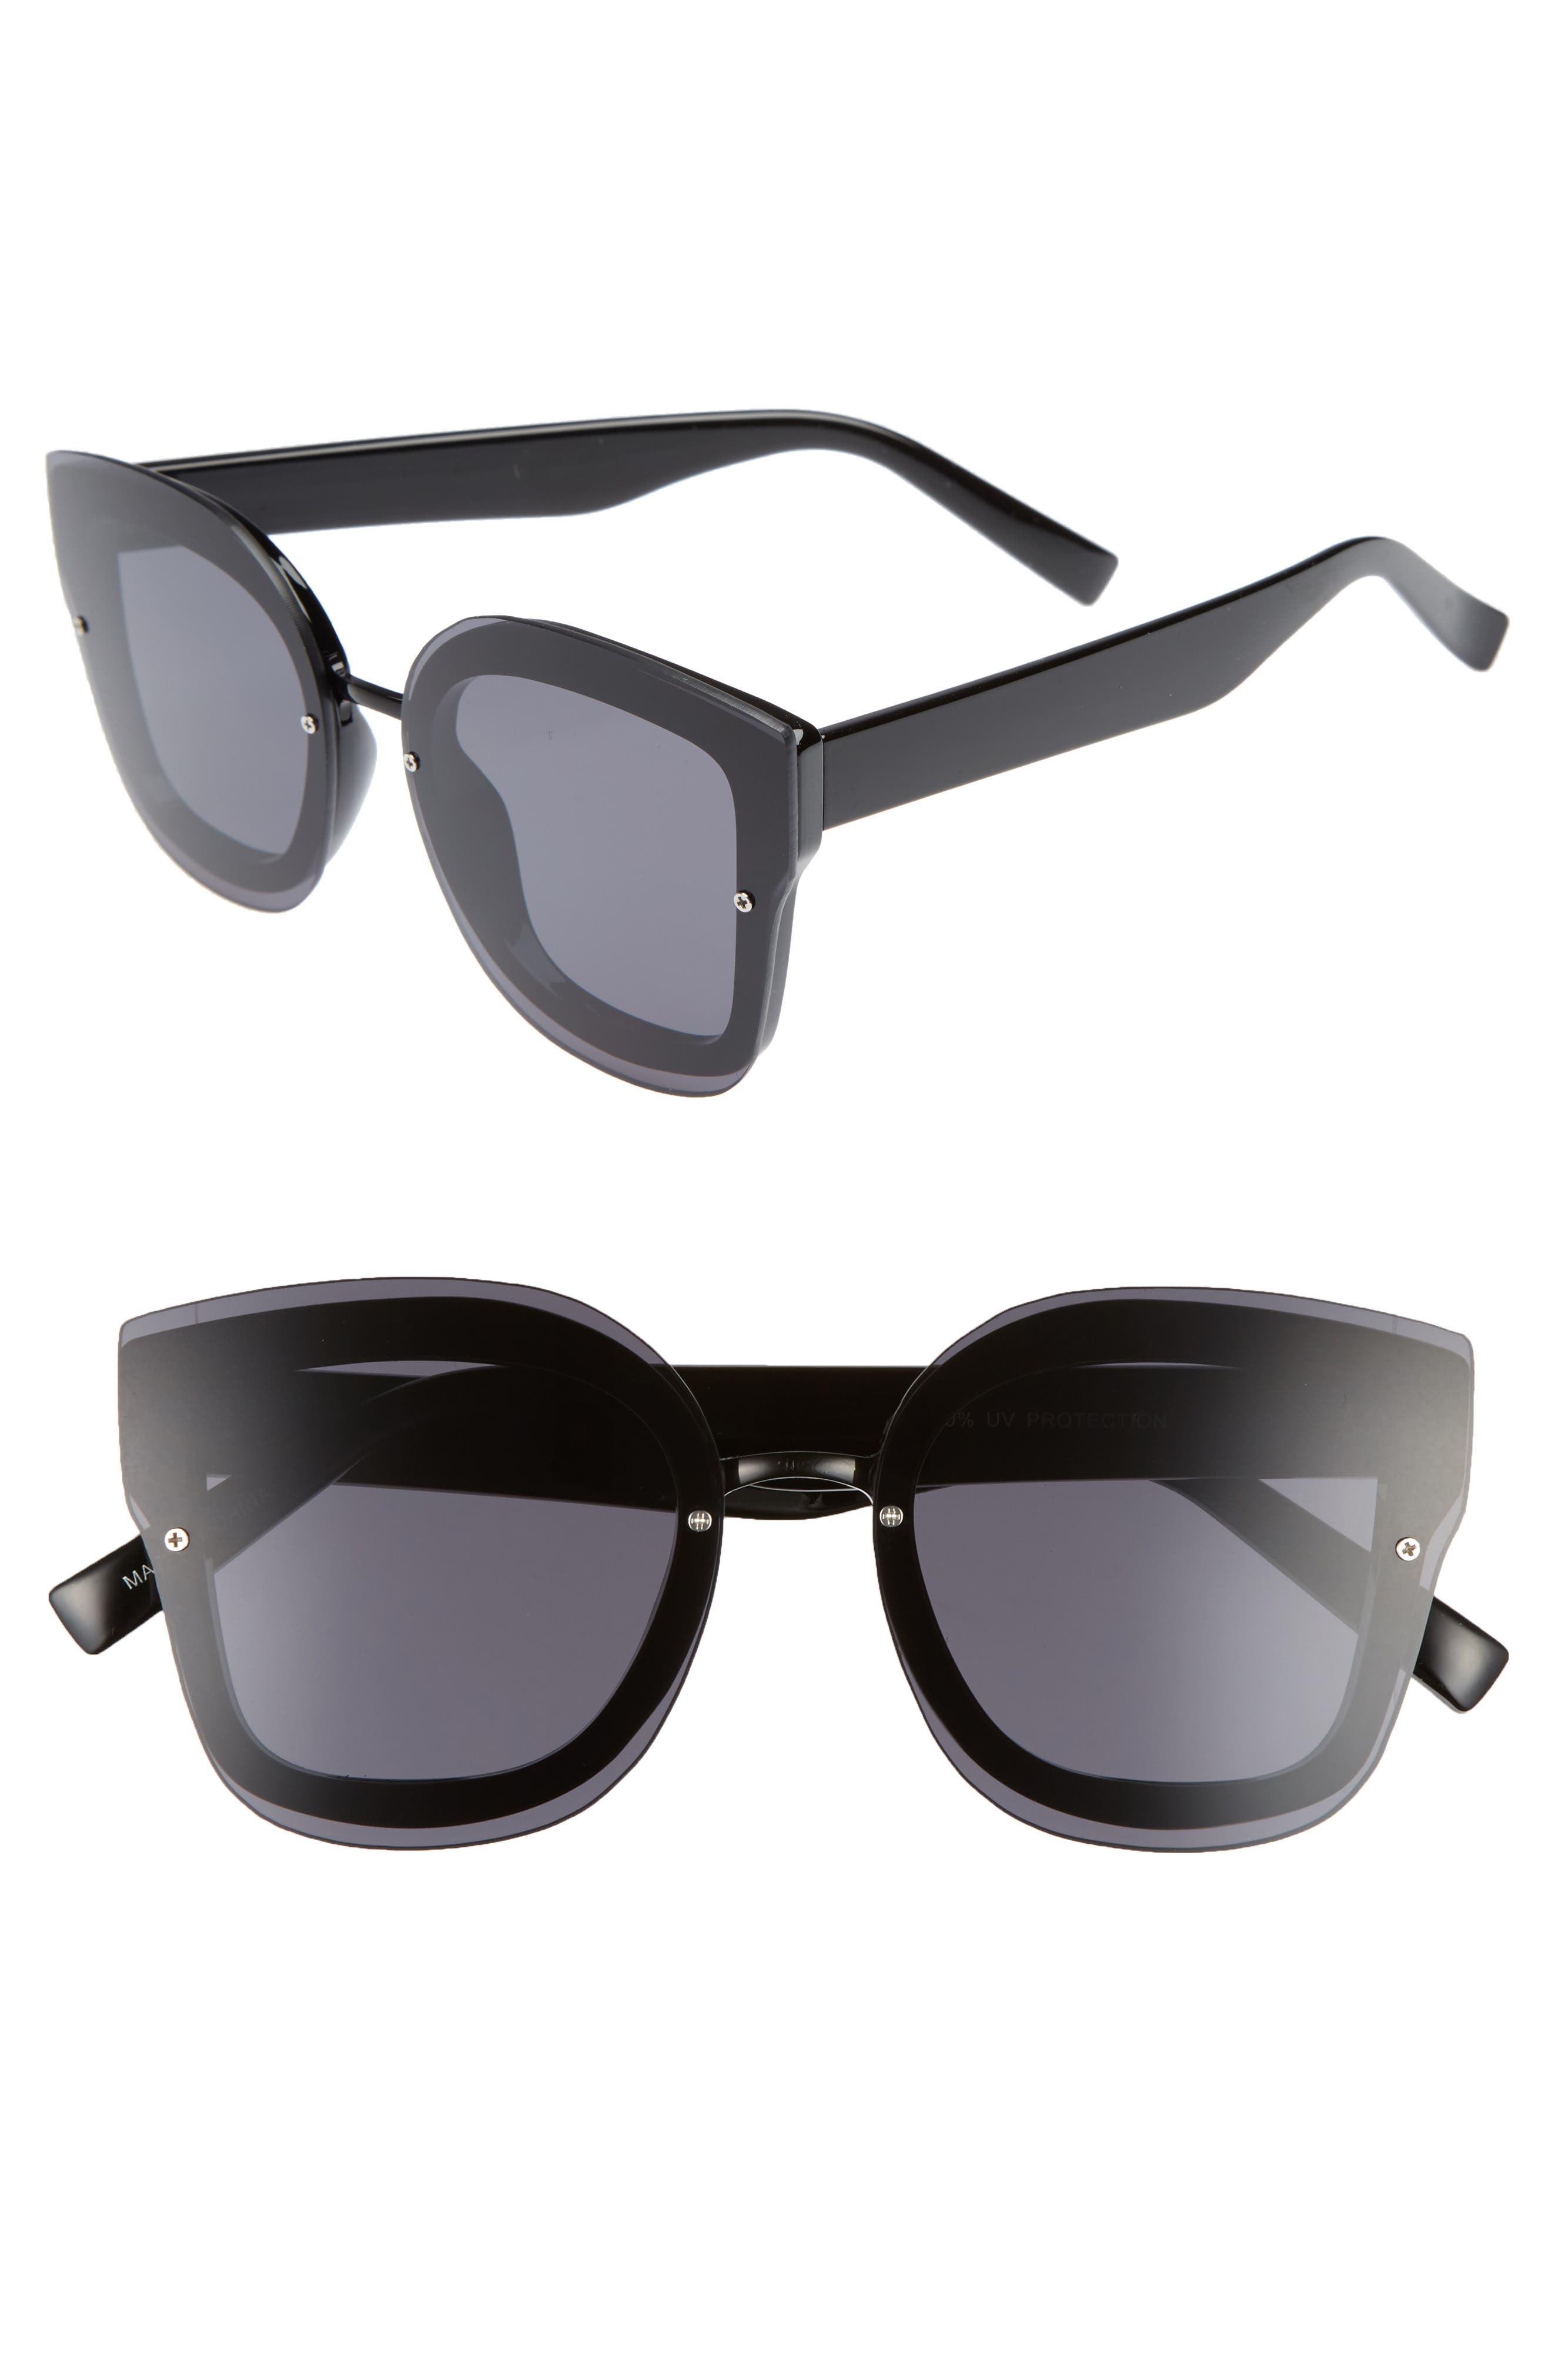 50mm Squared-Off Sunglasses,                         Main,                         color, 001